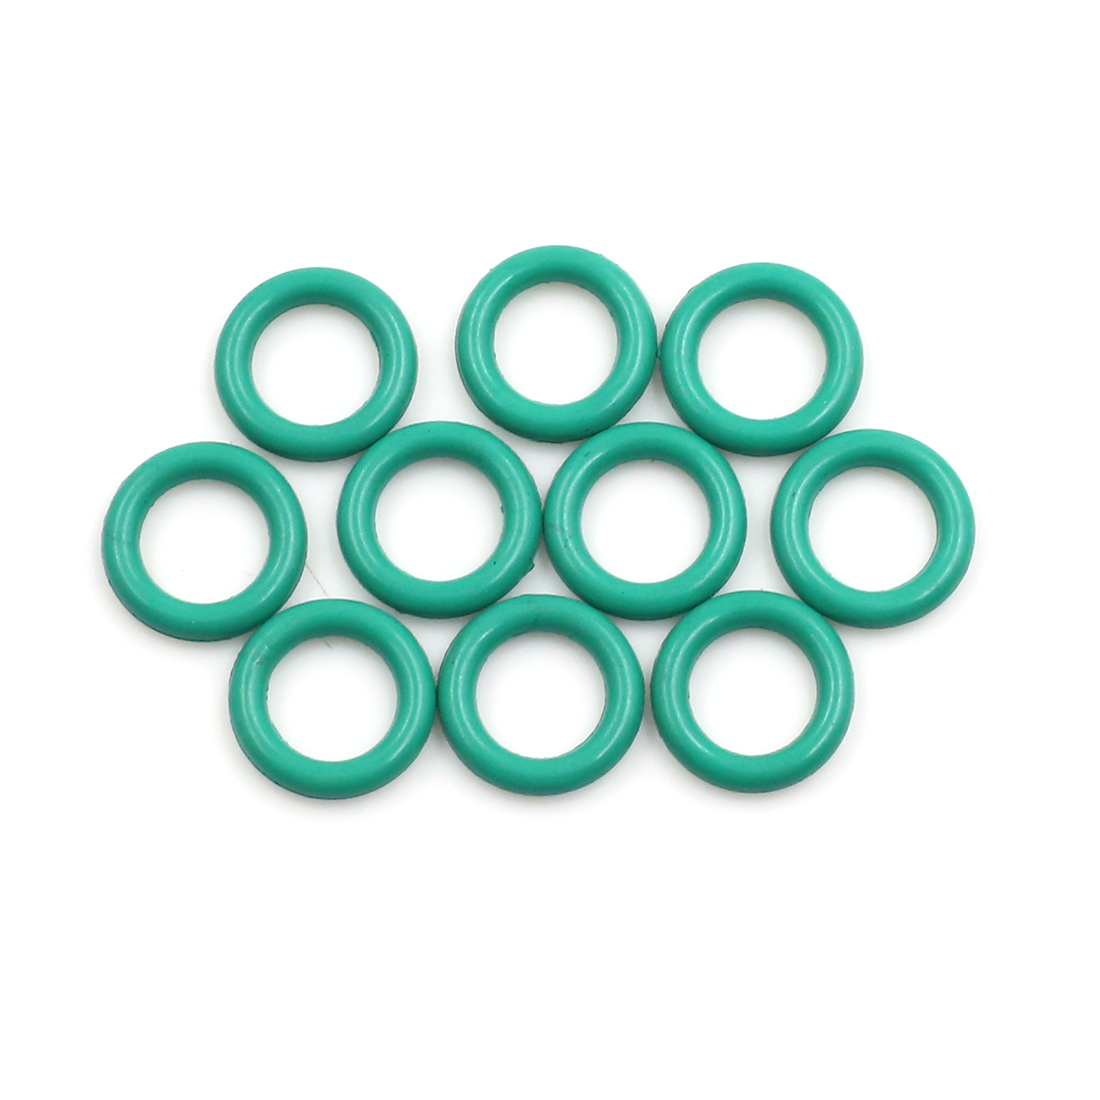 10pcs Green Fluorine Rubber O-Ring Seal Gasket Washer for Car 13 x 2.5mm